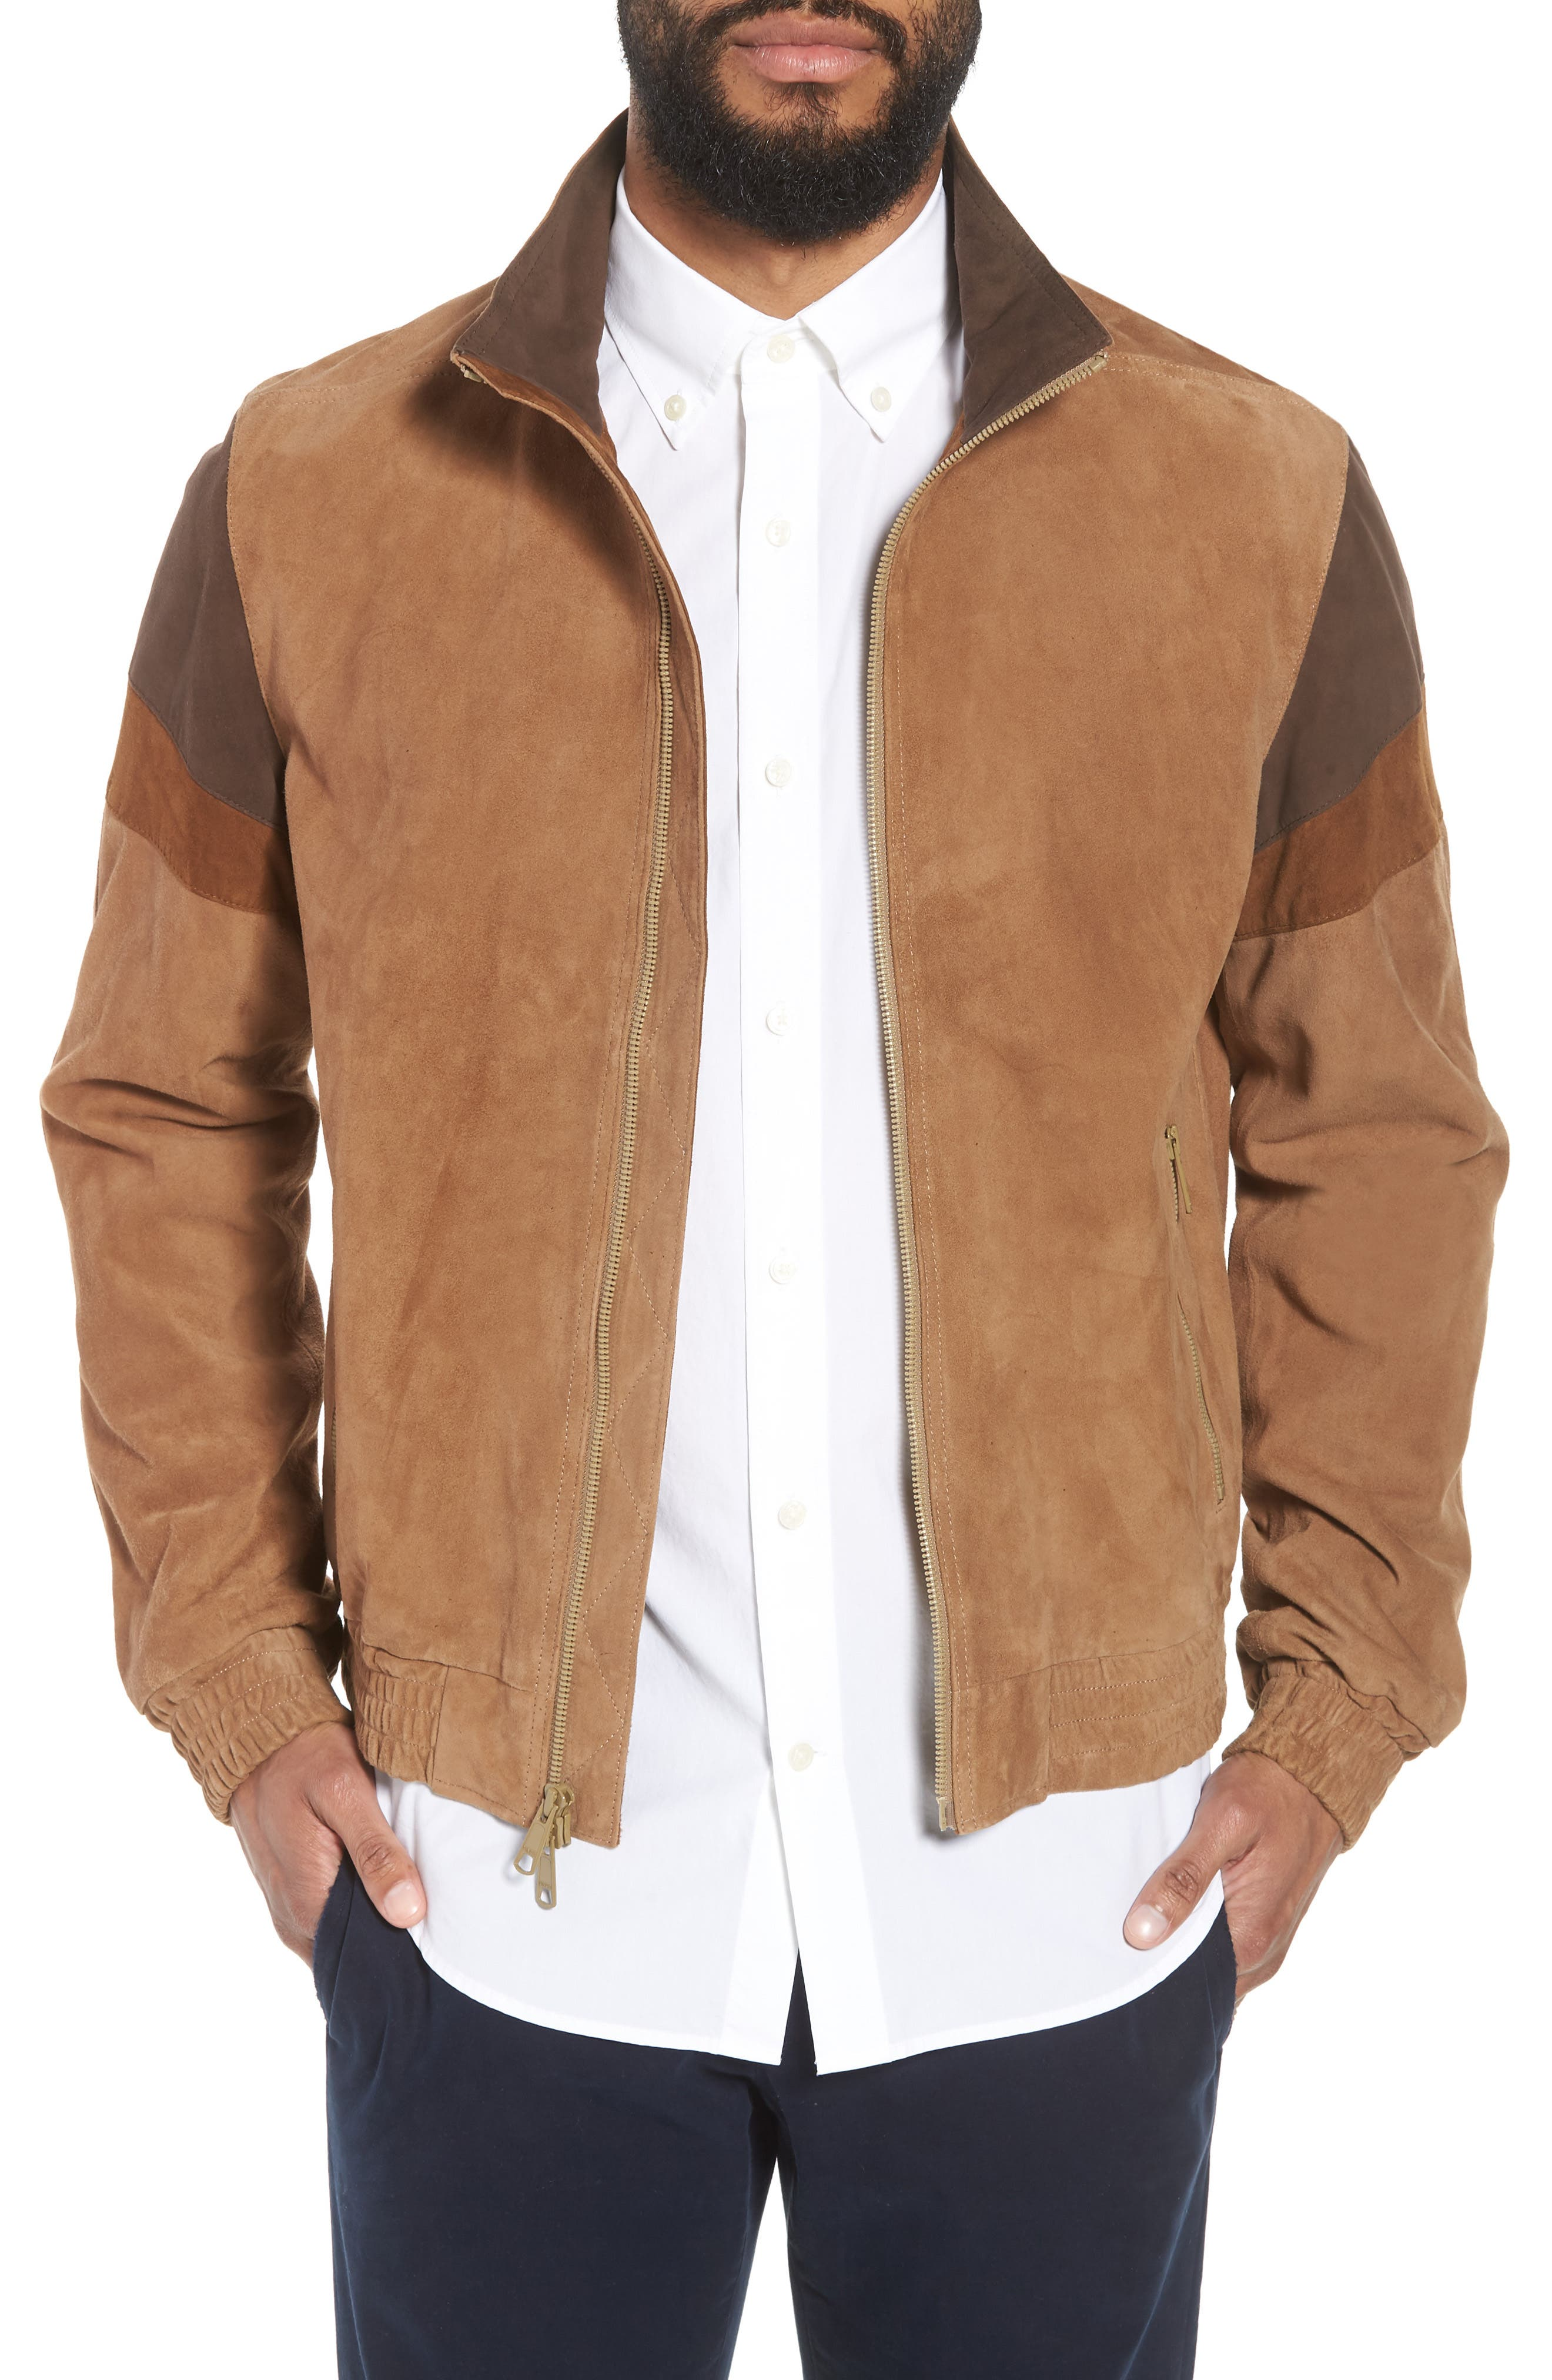 Colorblock Leather Track Jacket,                             Main thumbnail 1, color,                             250